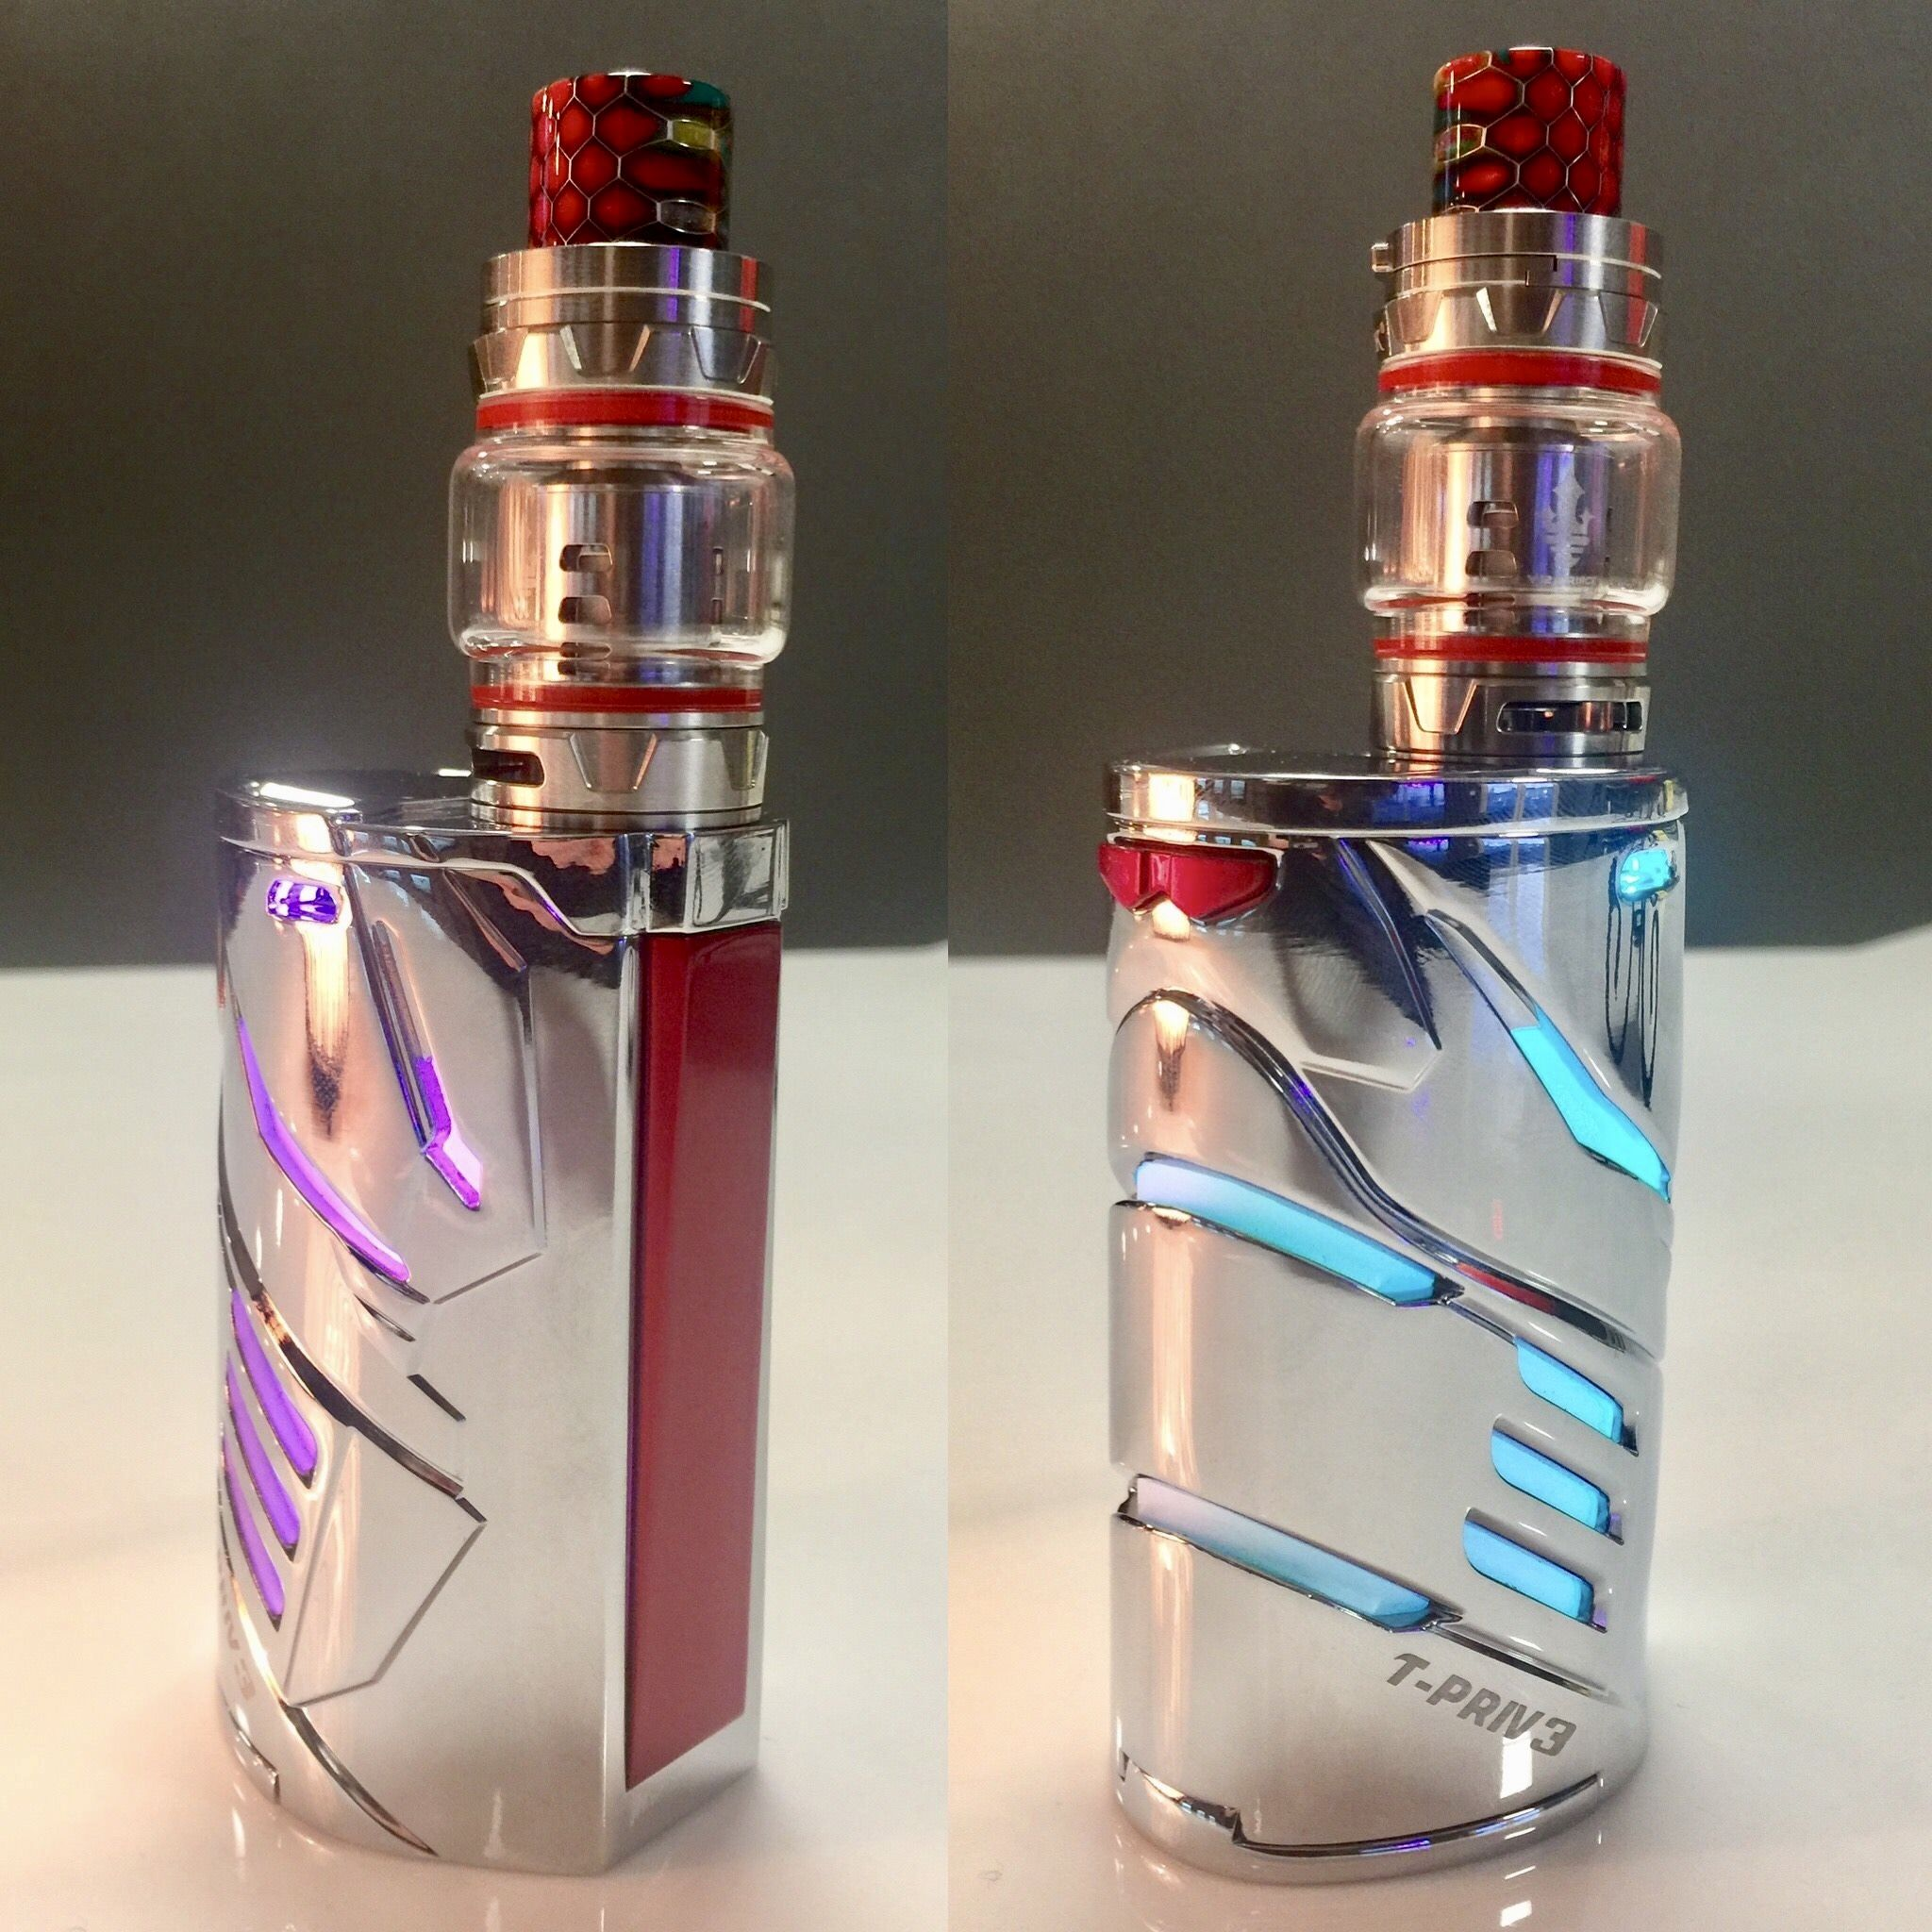 The SMOK T-Priv 3 in Chrome is here and absolutely mesmerizing to